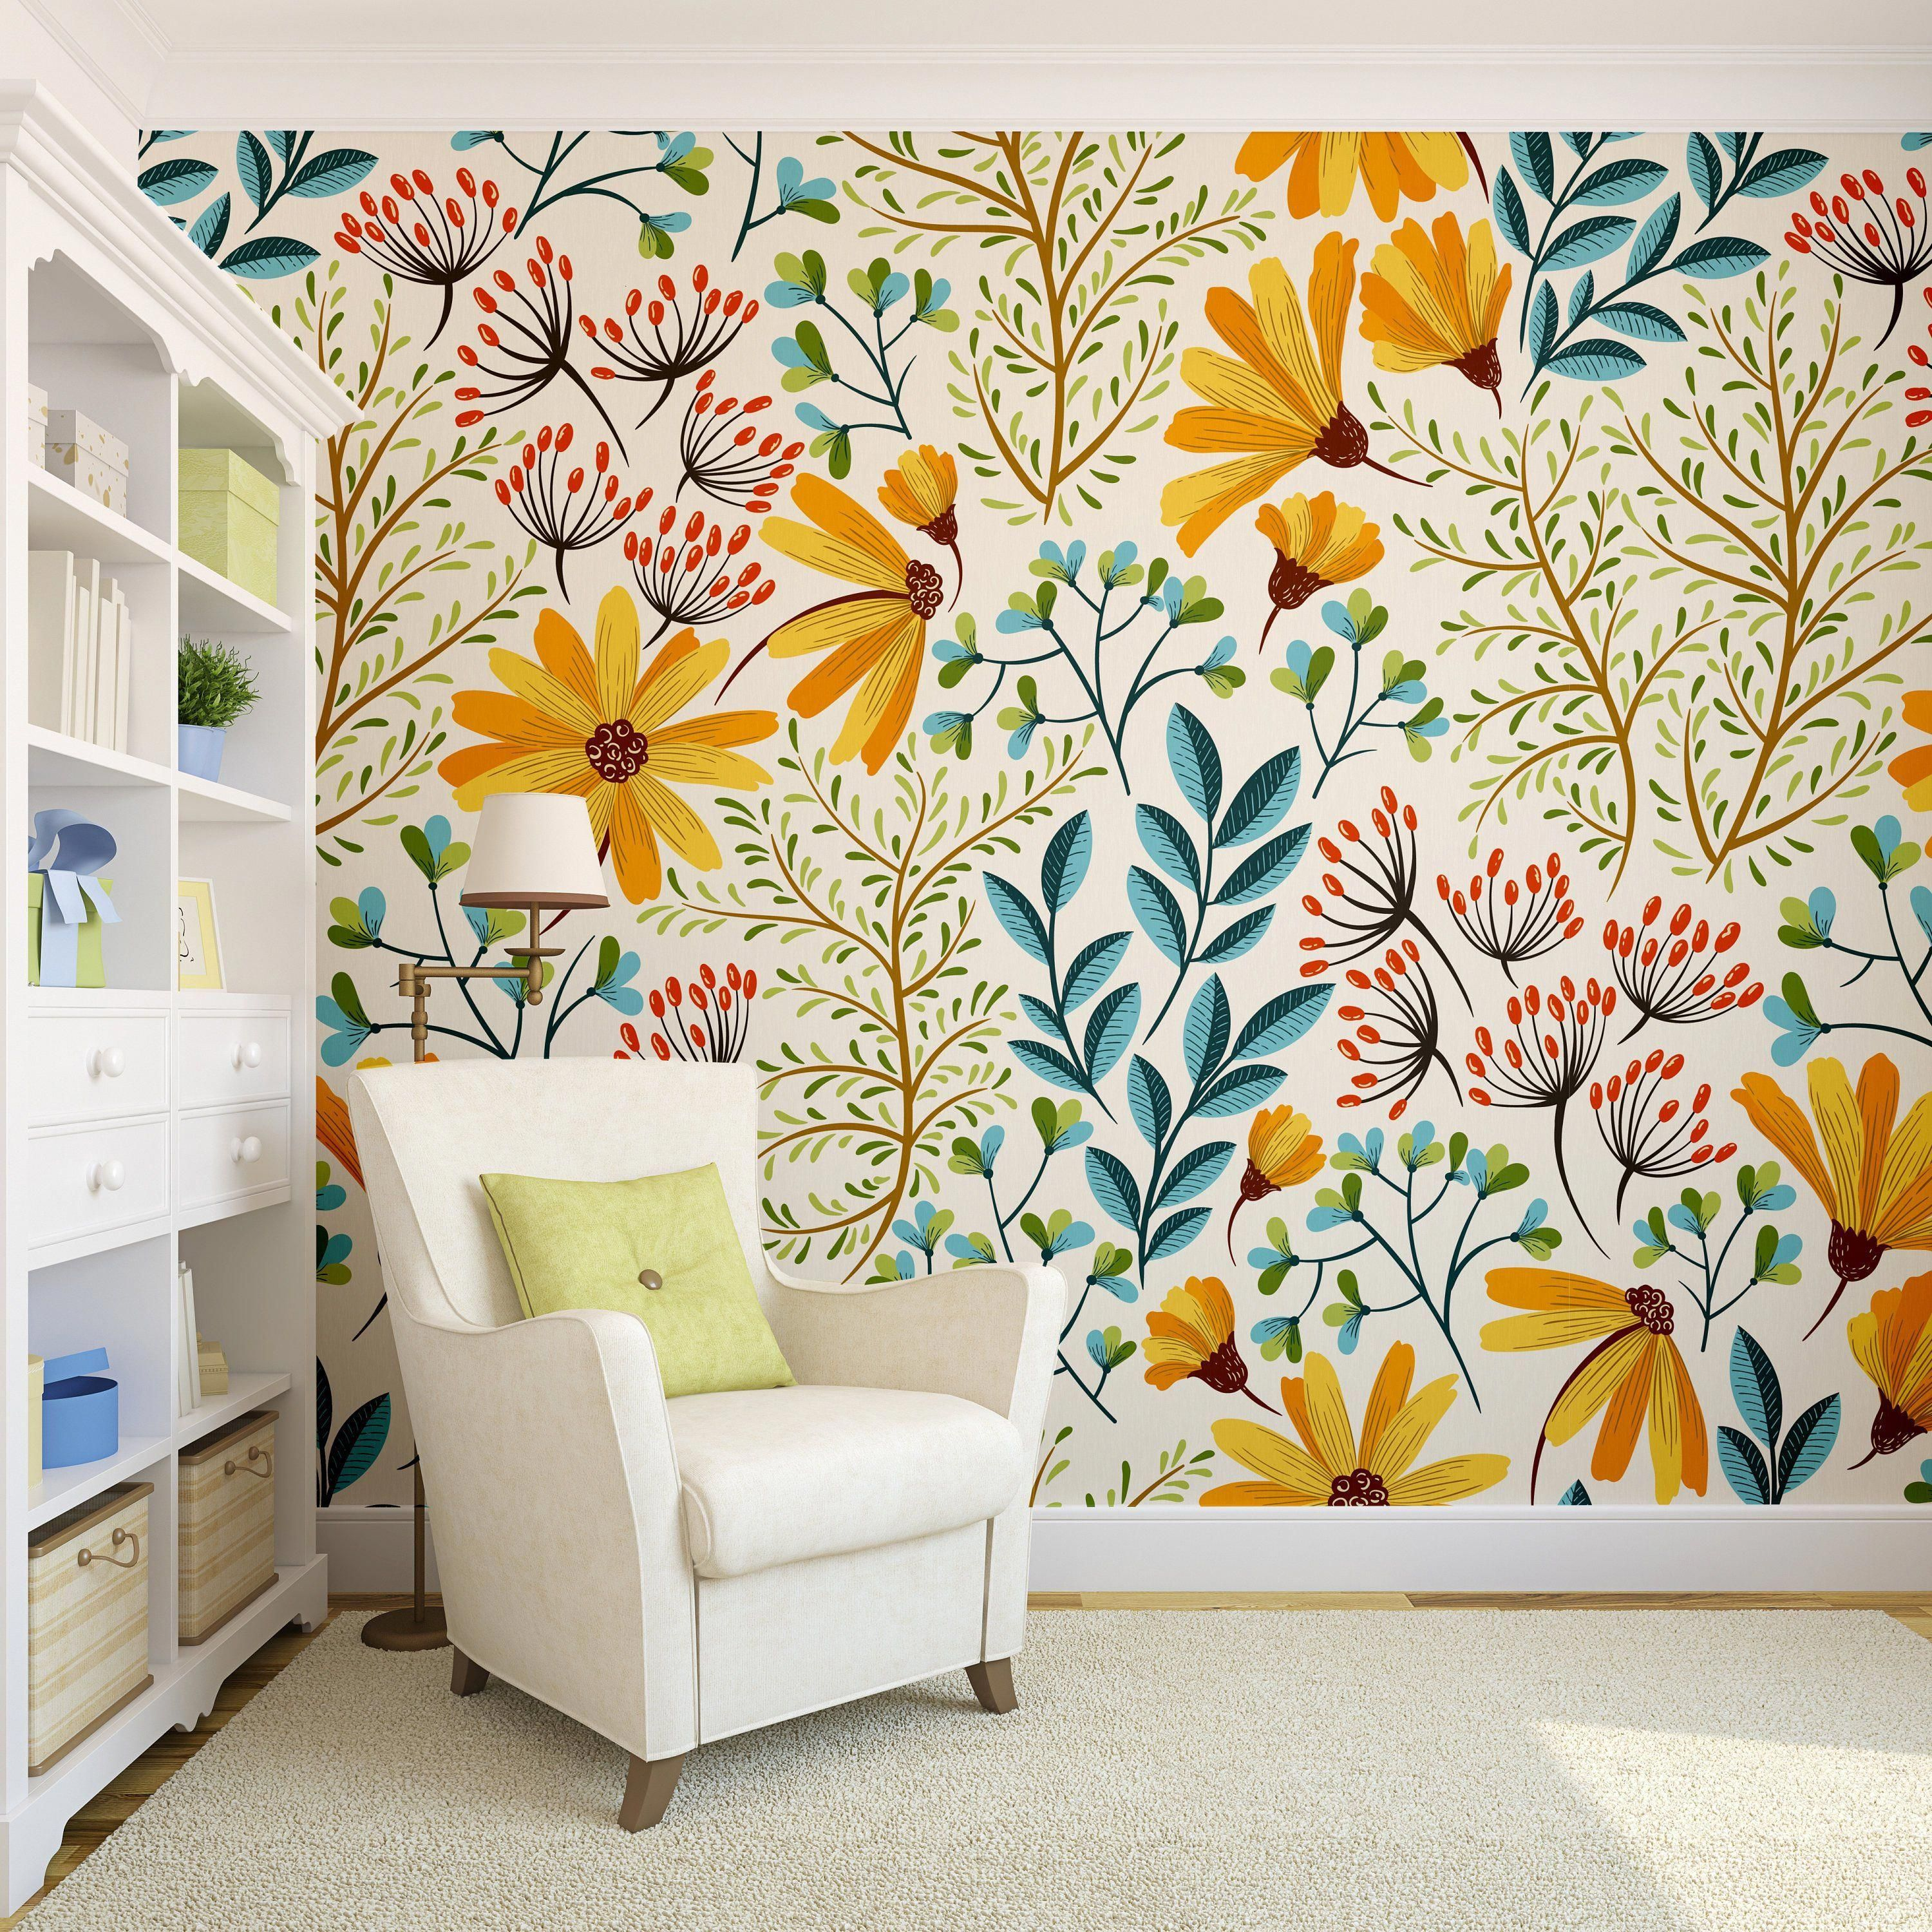 Removable Wallpaper Colorful Floral Wallpaper Peel And Etsy Homedecorideas Wall Wallpaper Room Wallpaper Home Wallpaper